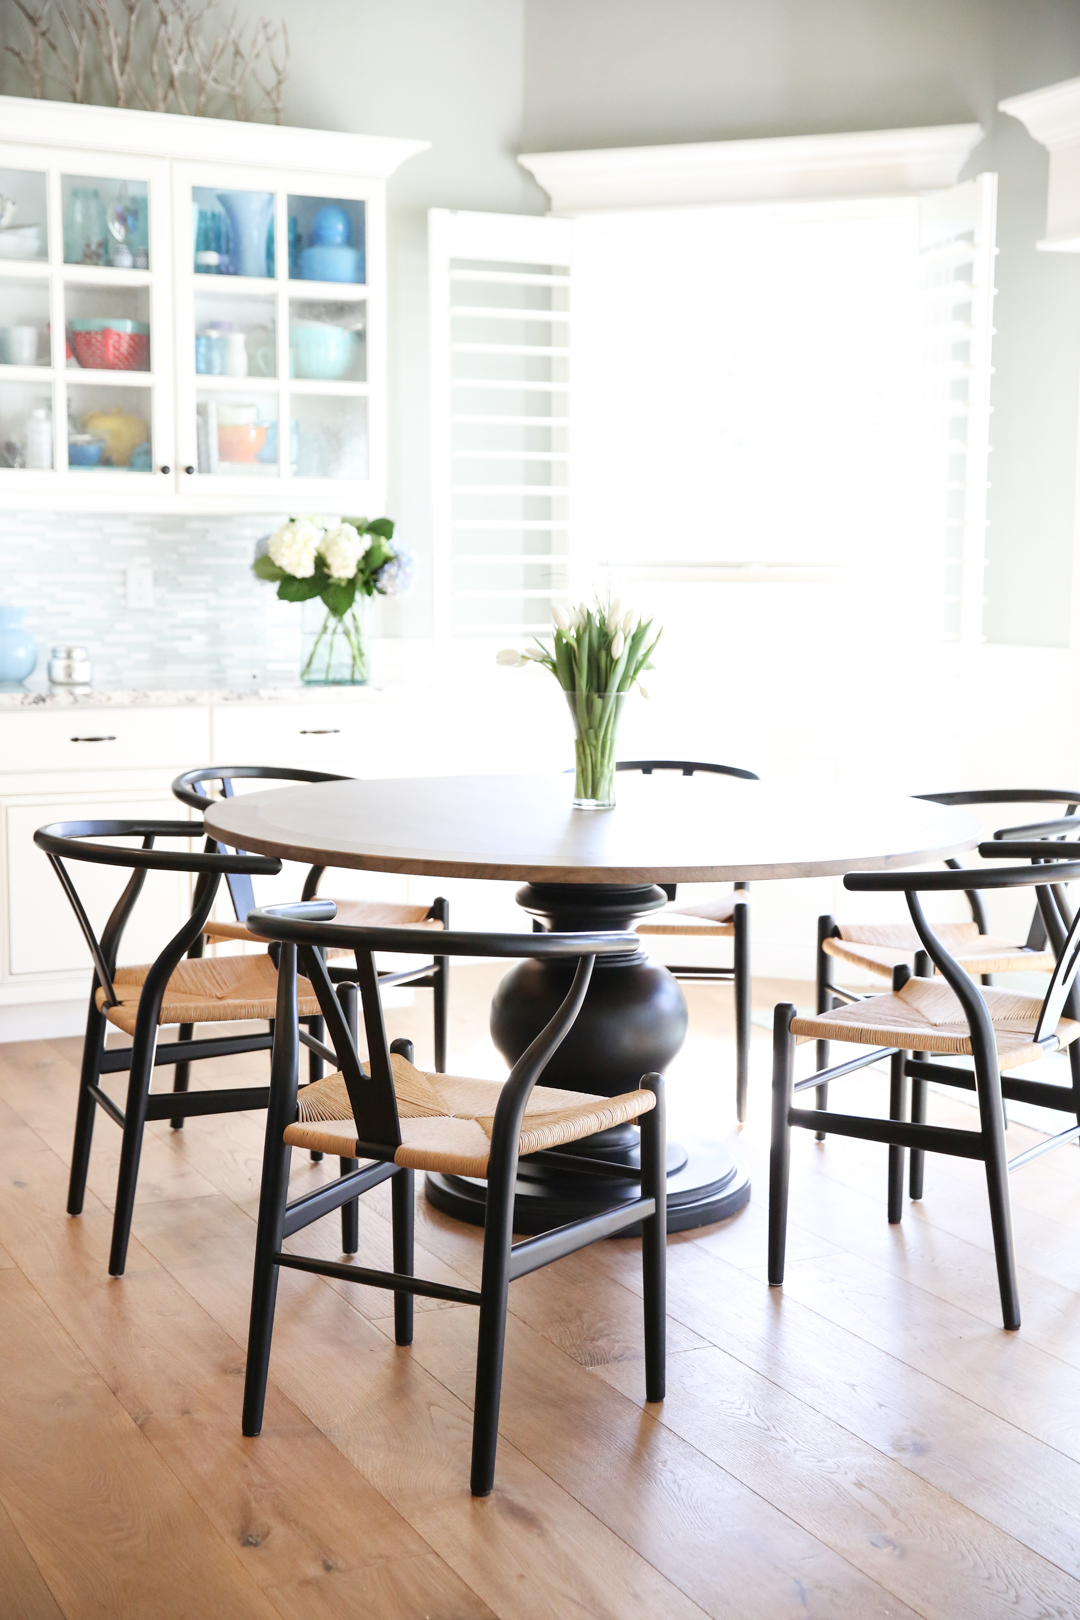 How to choose a round kitchen table and chairs saramichellewells round kitchen chair and table workwithnaturefo